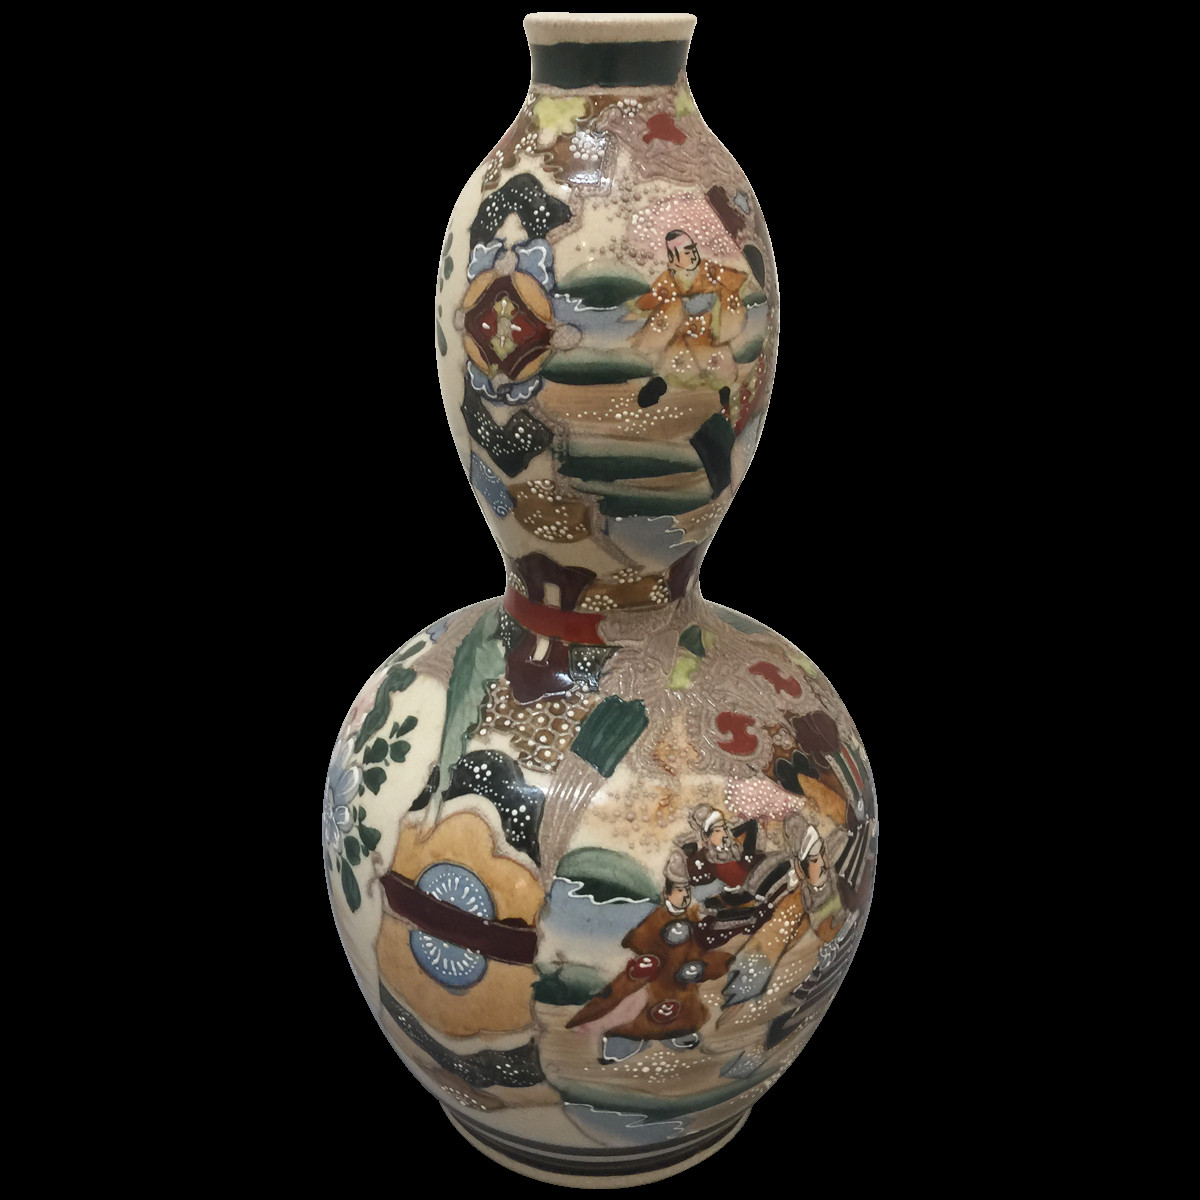 satsuma vase with handles of antique satsuma biscuit jar moriage meiji period covere throughout hand painted double gourd satsuma style vase